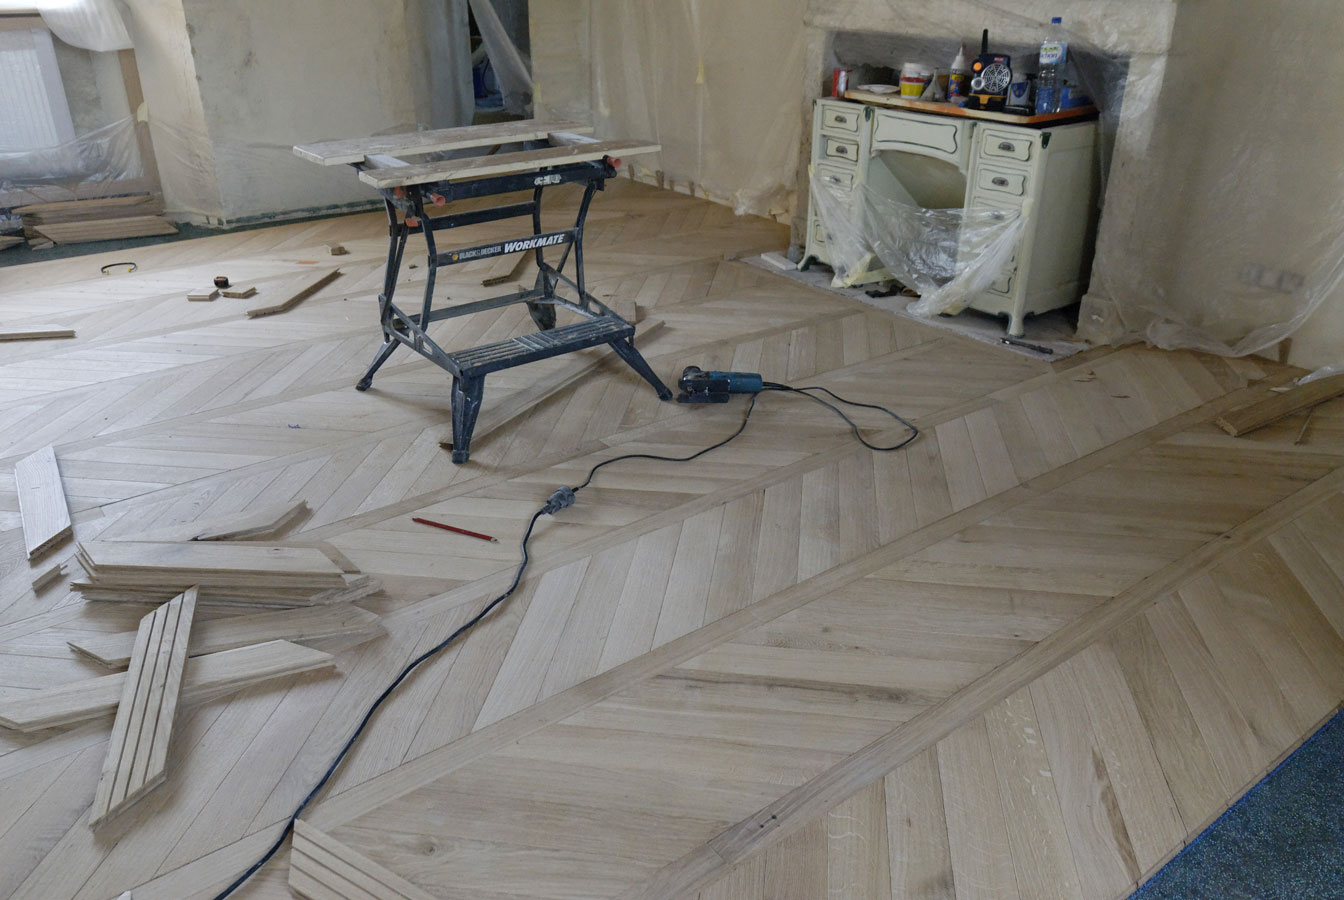 laying parquet flooring further advice on useful how to repair parquet flooring water damage. Black Bedroom Furniture Sets. Home Design Ideas